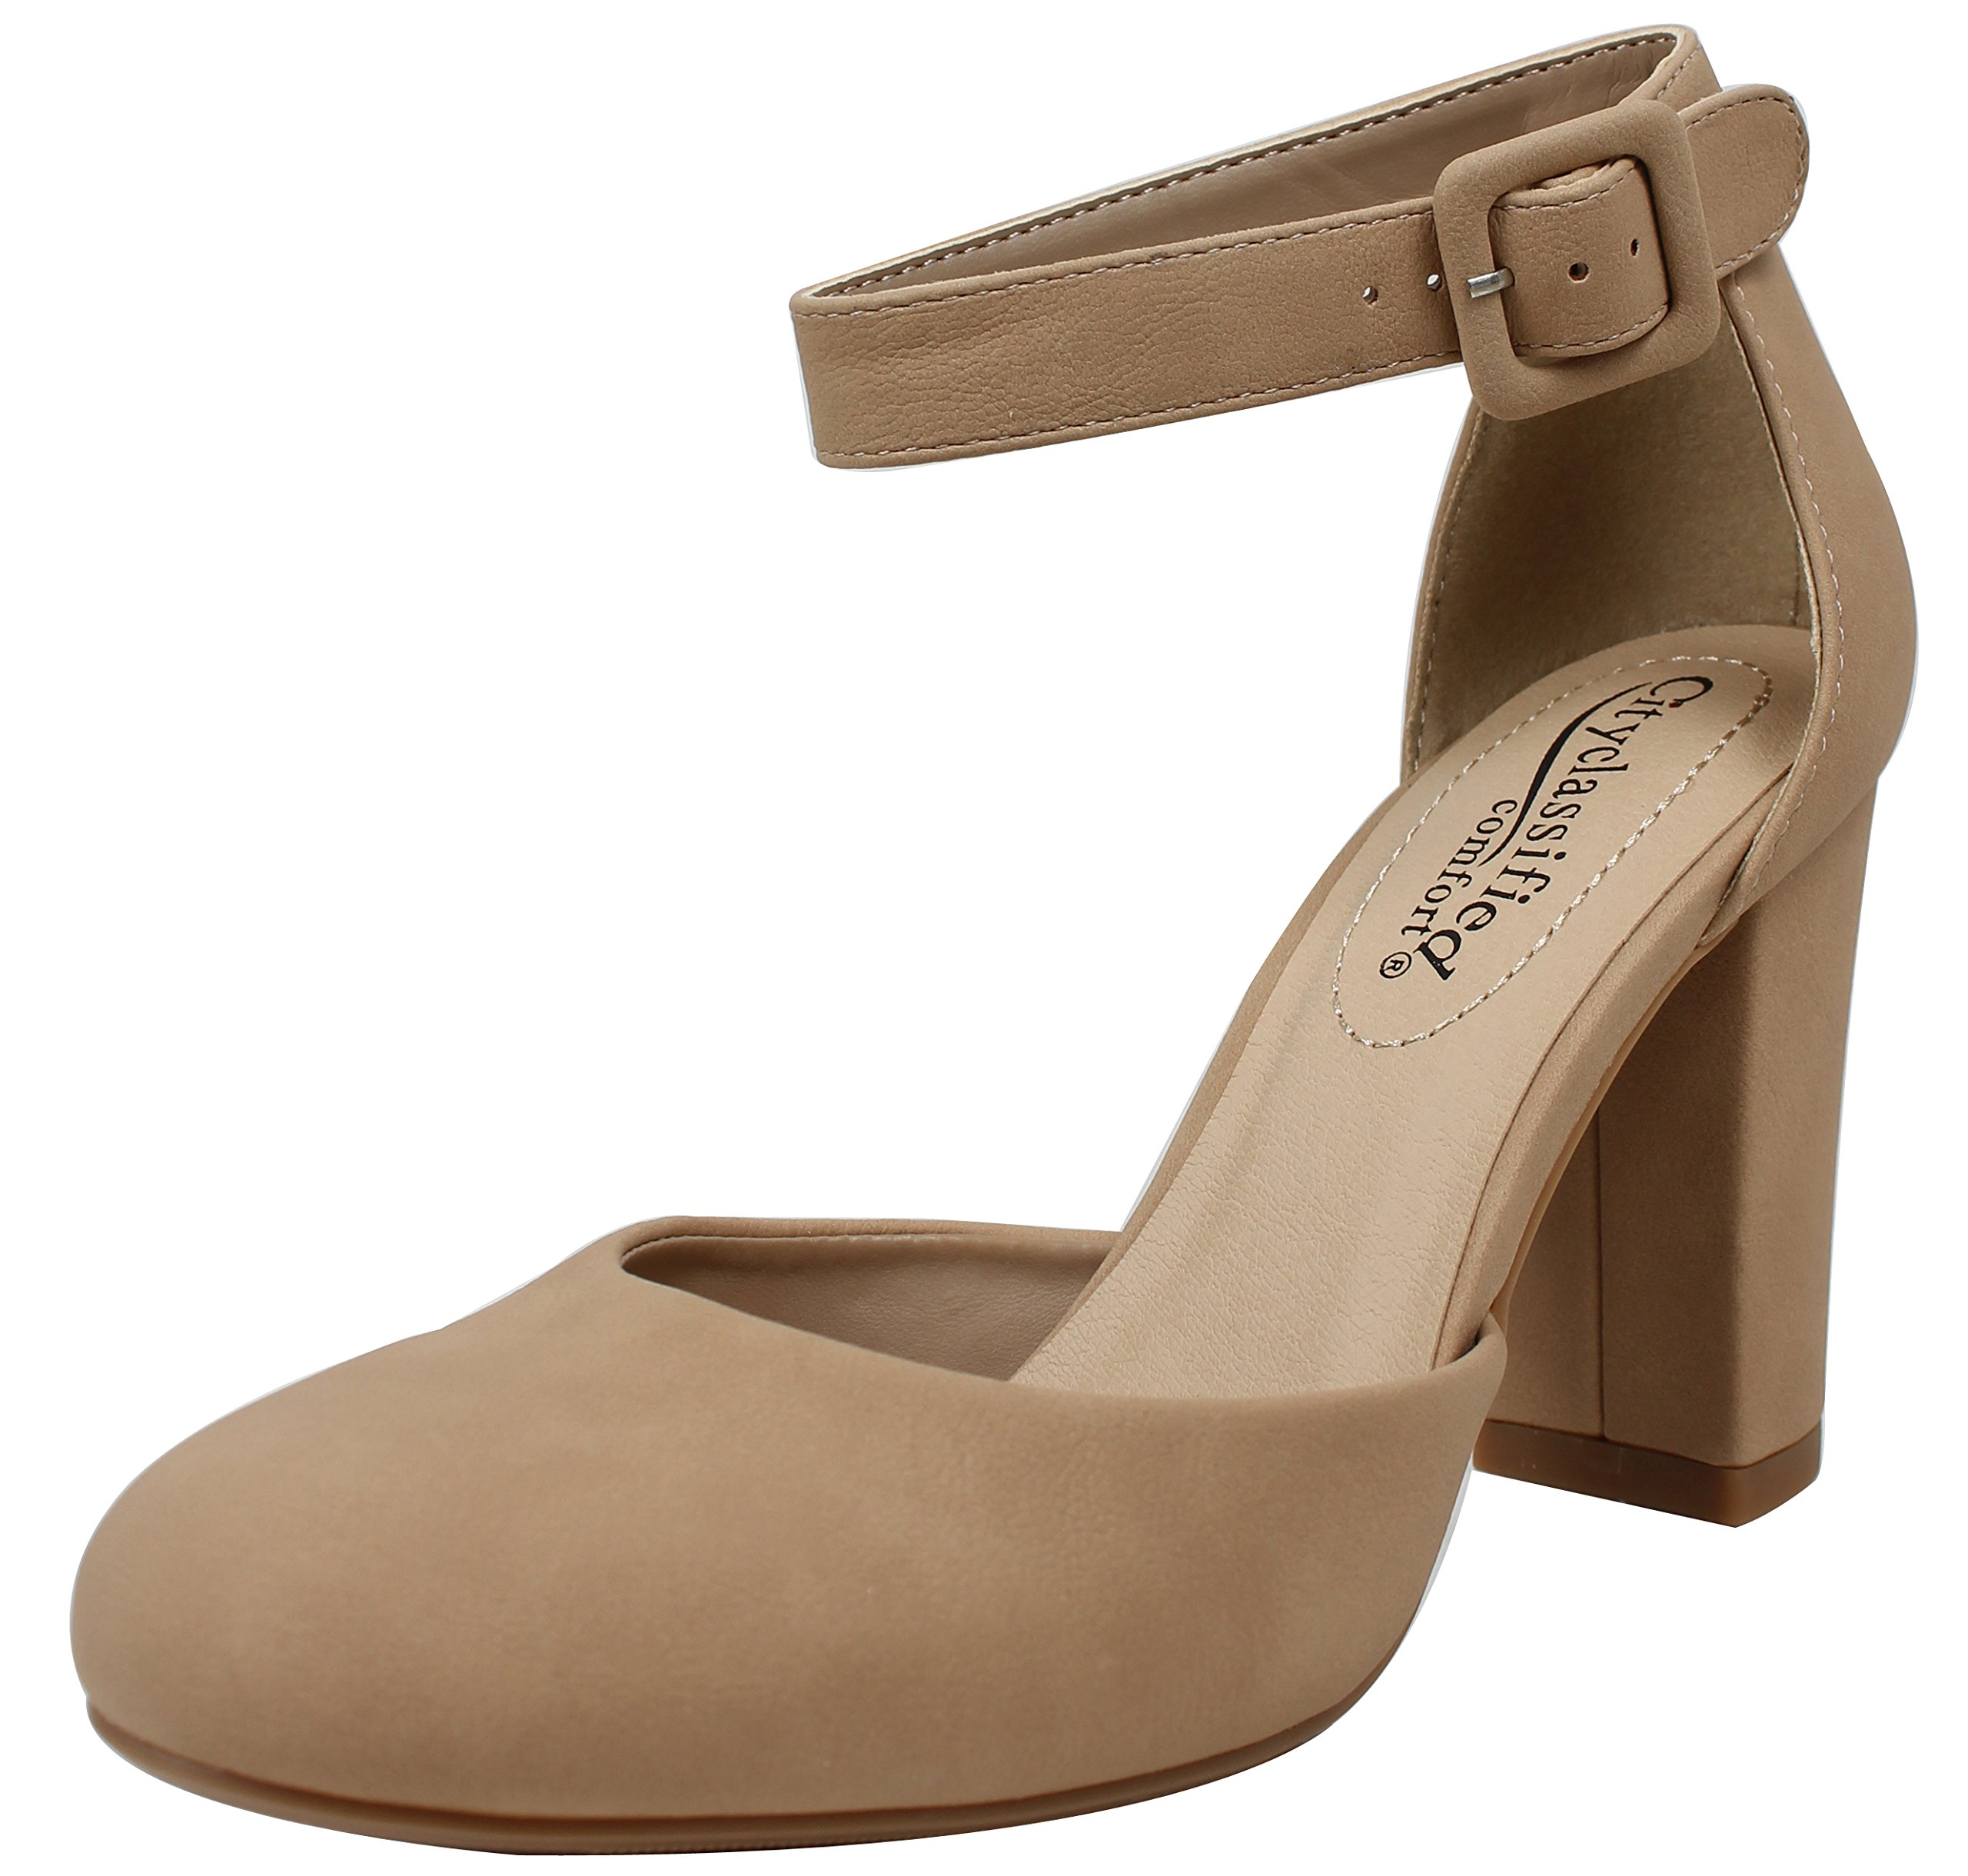 9263b62a4955c Galleon - City Classified Women's Closed Toe Ankle Strap Block Heel,  Natural, 6 M US